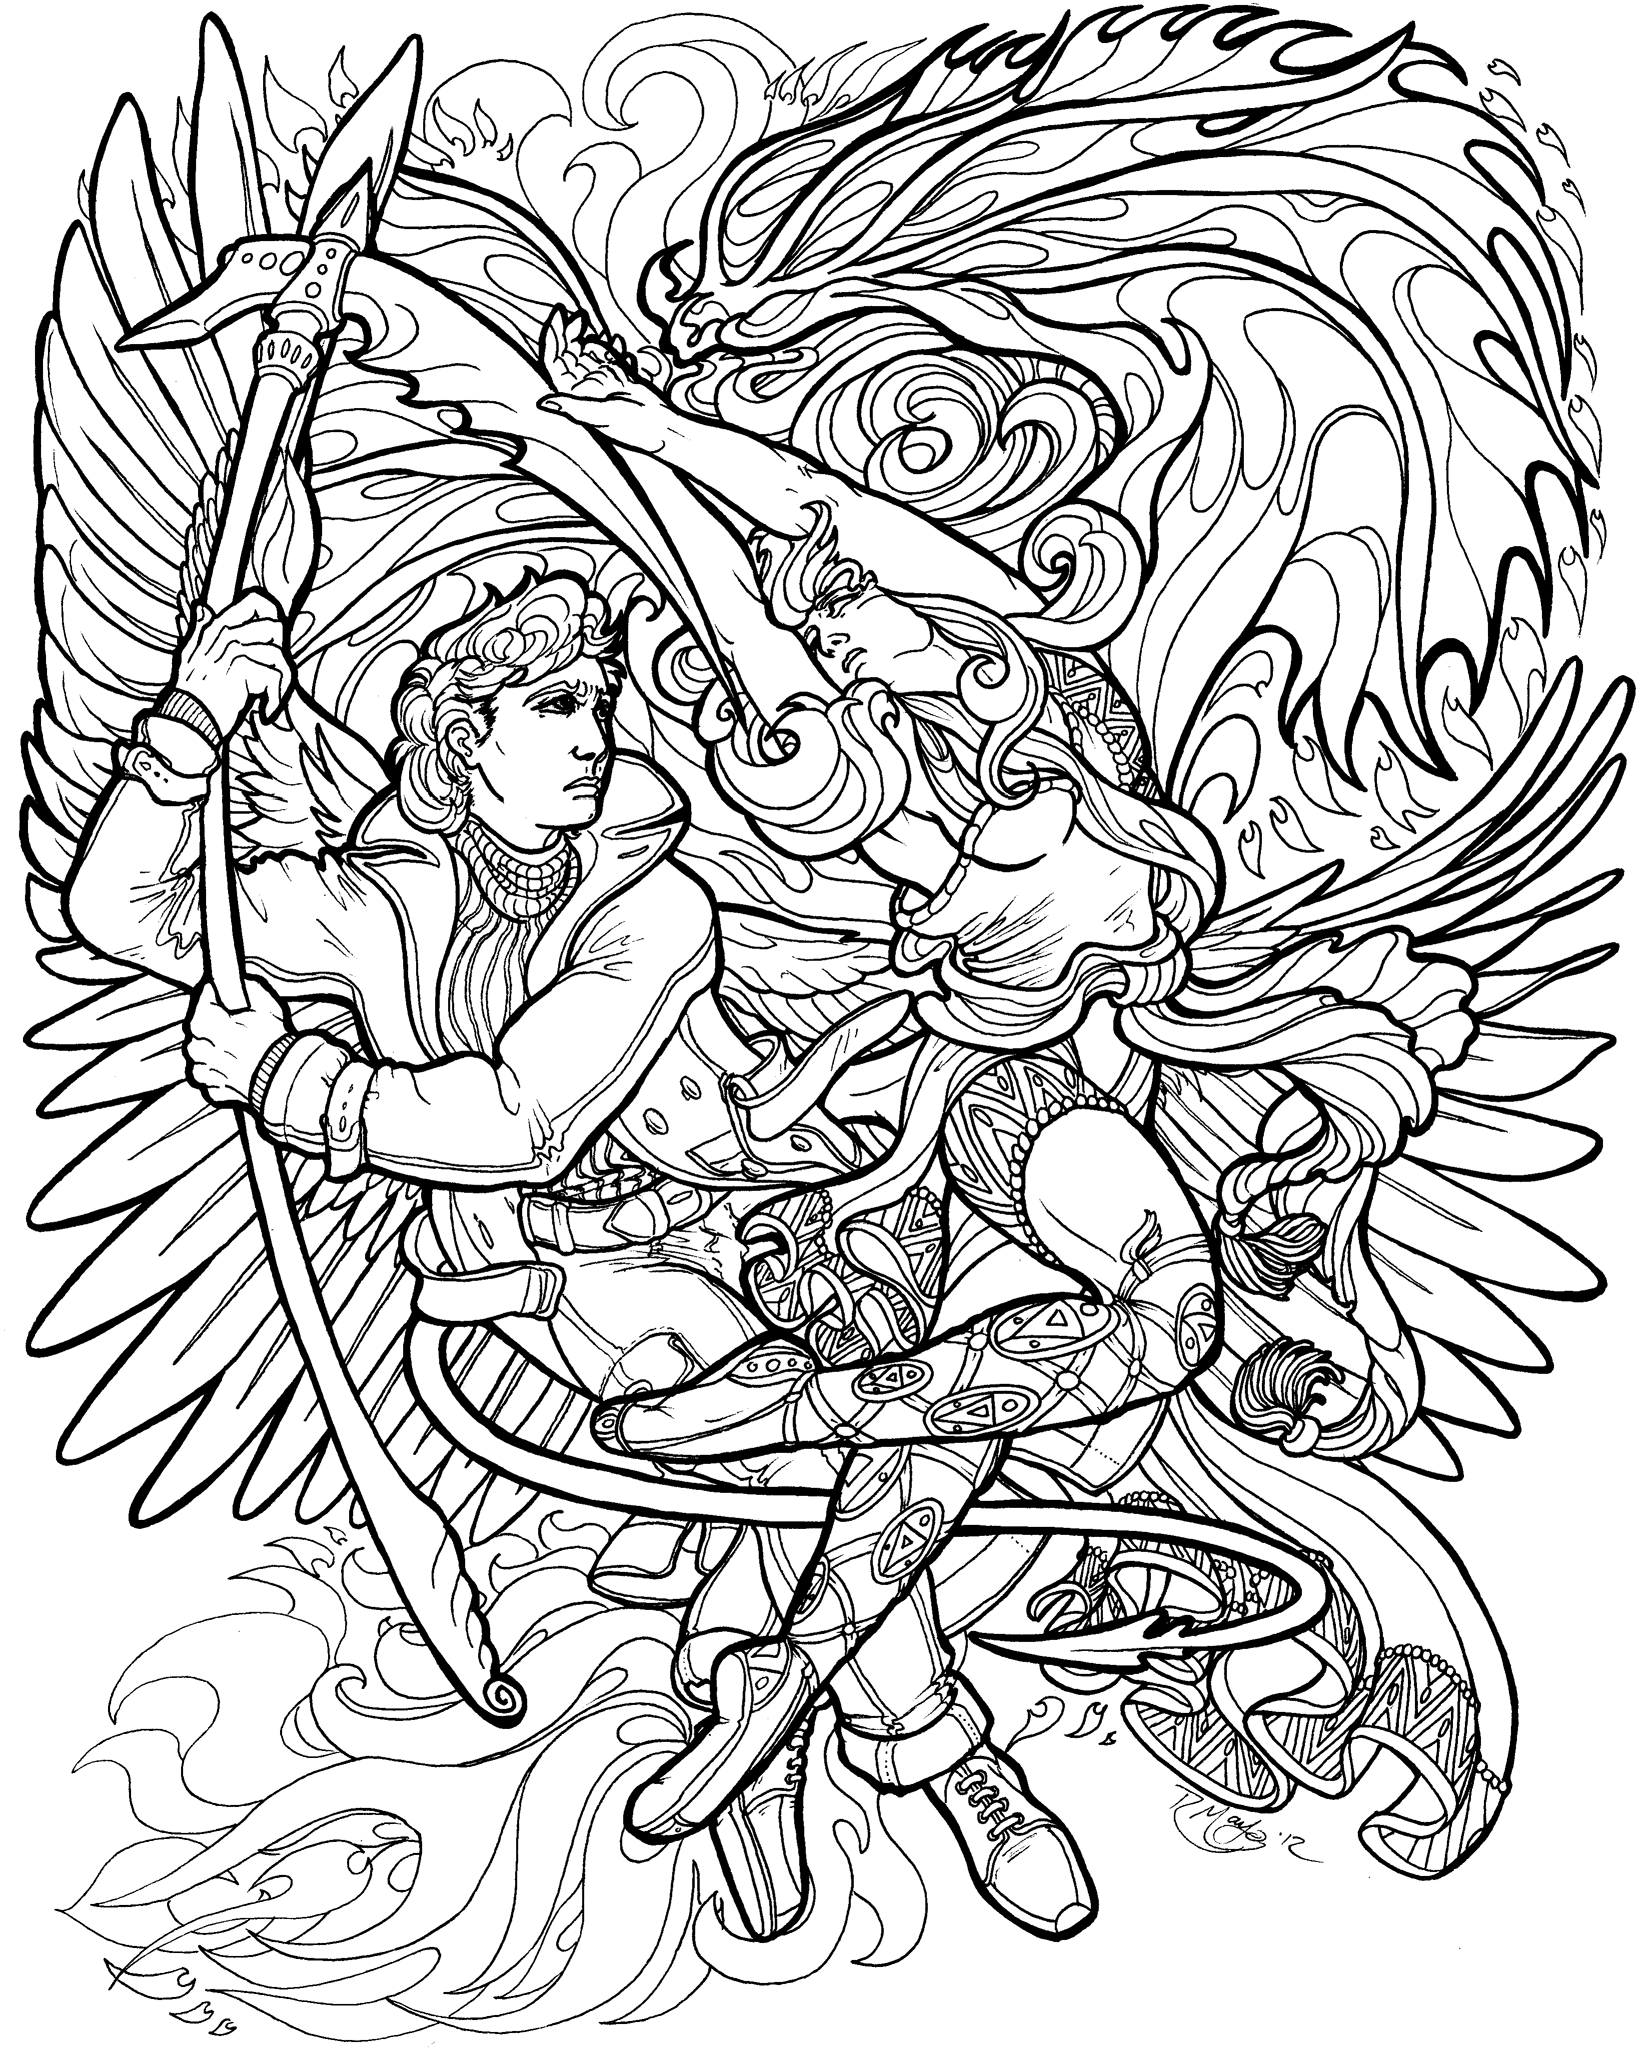 10 Pics Of Hardest Coloring Page Ever Worlds Hardest Coloring